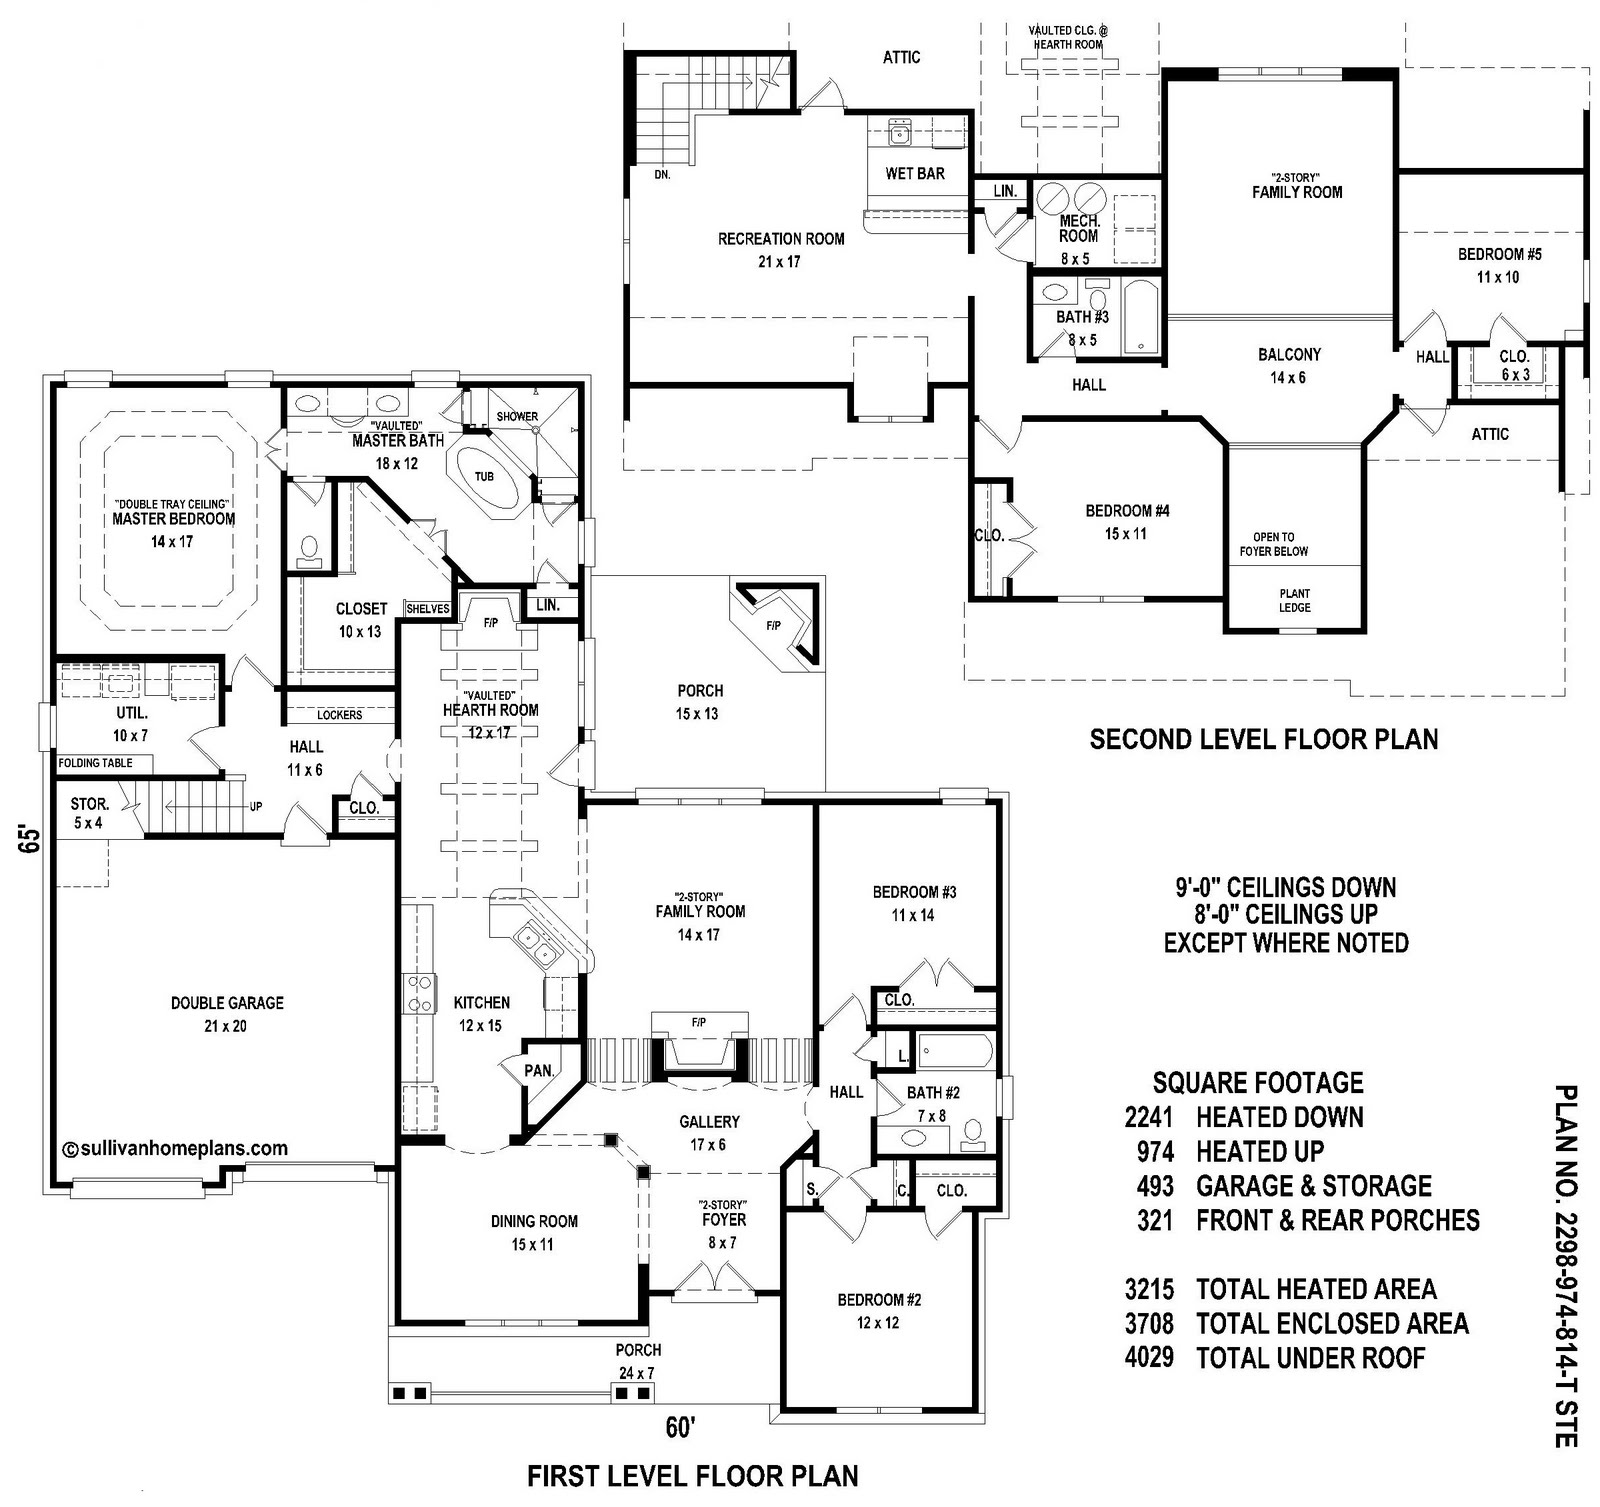 Sullivan home plans june 2010 for 5 6 bedroom house plans